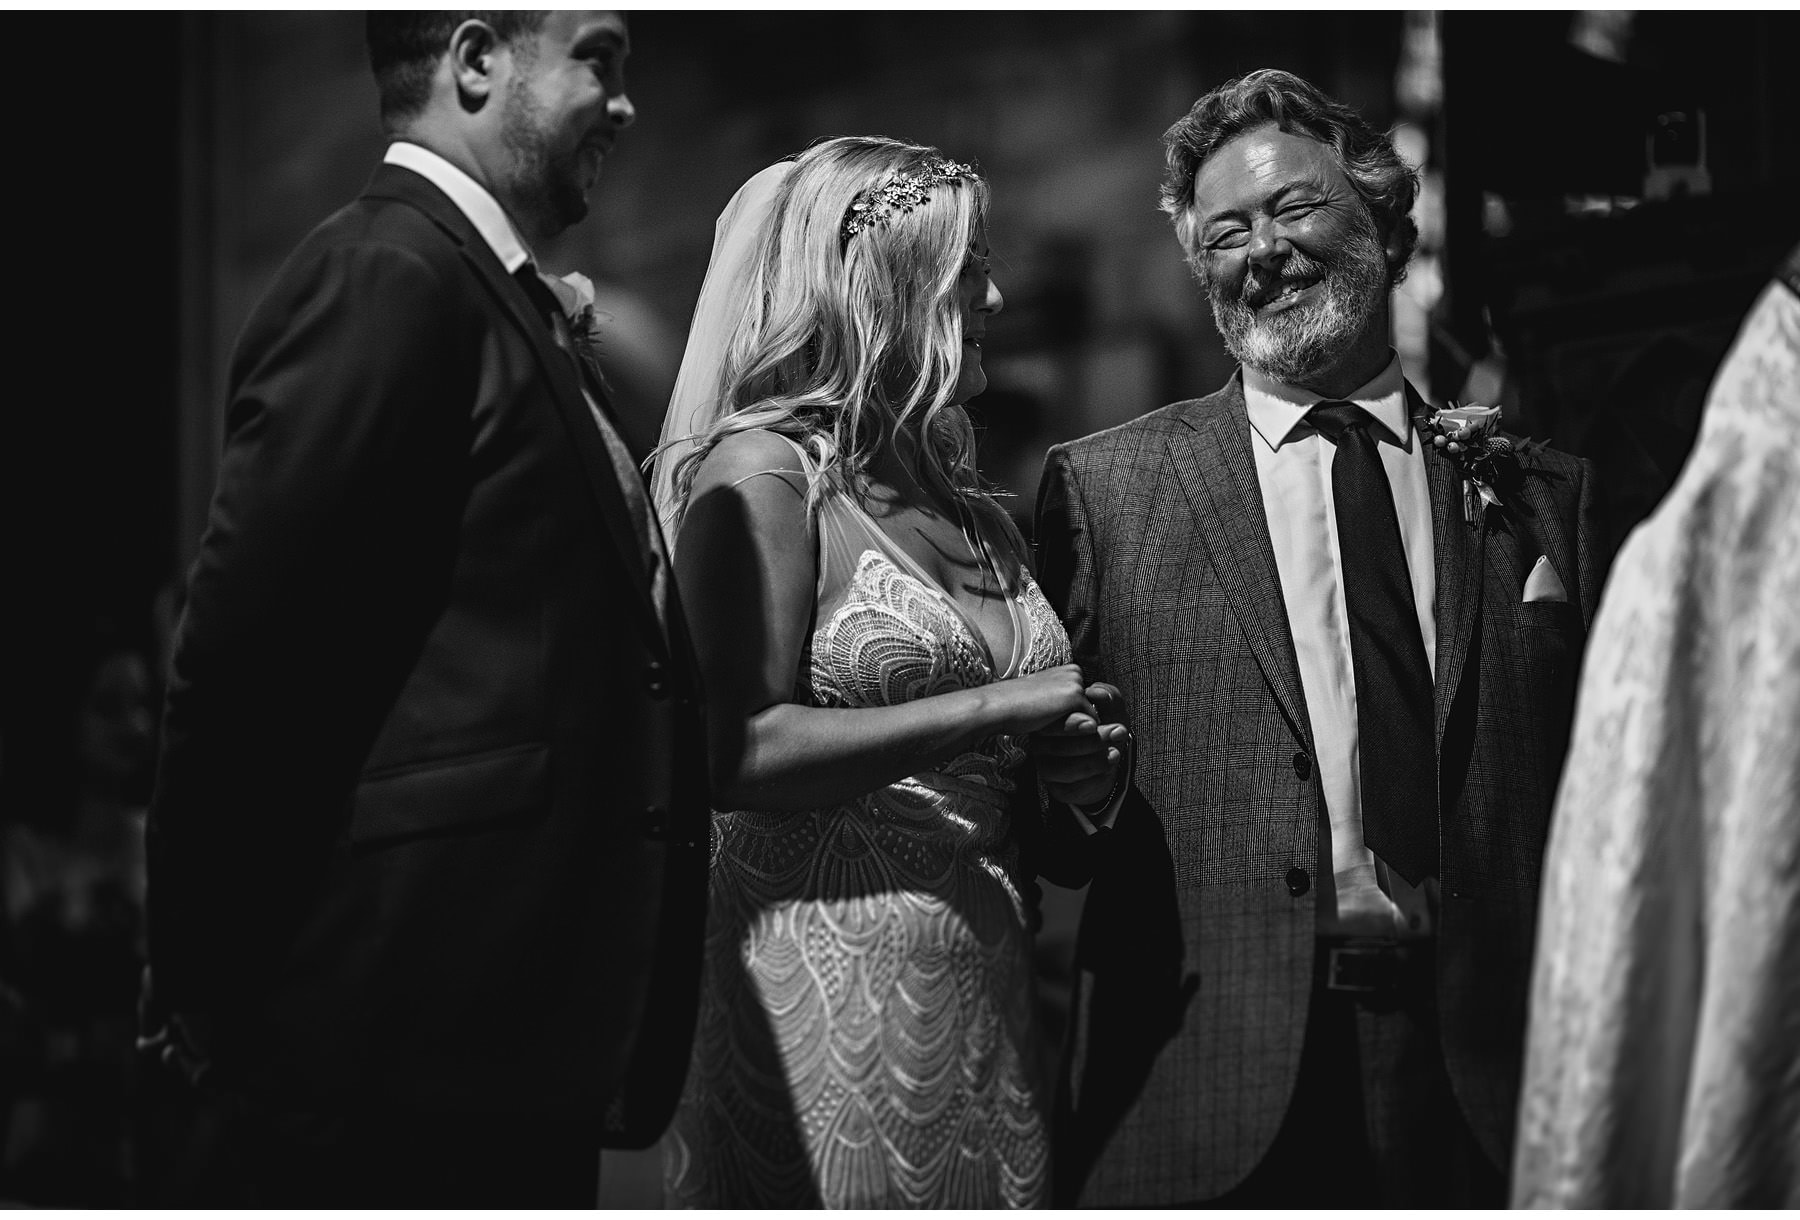 the father of the bride smiling during the wedding ceremony